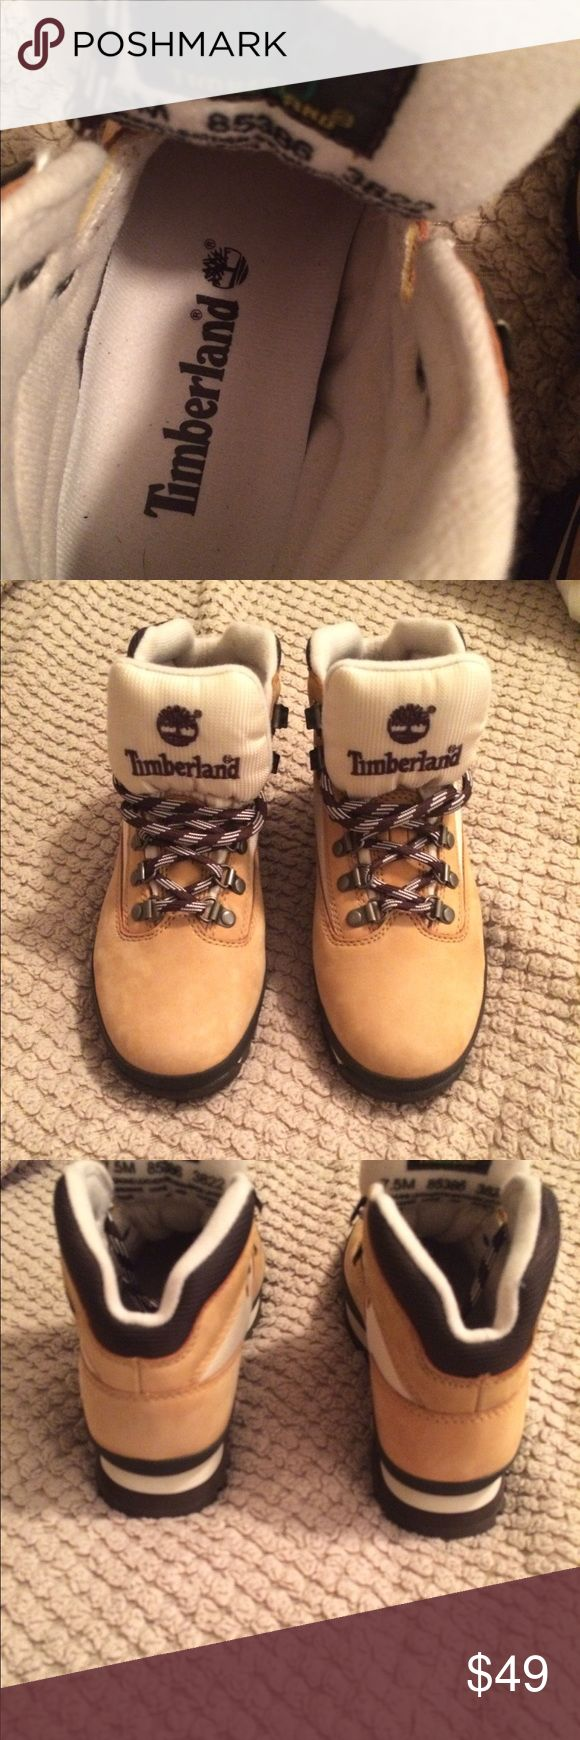 Timberland field boots 7.5m Timberland women's field boots. 7.5 M  Wheat color with cream mesh. Never Worn ! Timberland Shoes Ankle Boots & Booties